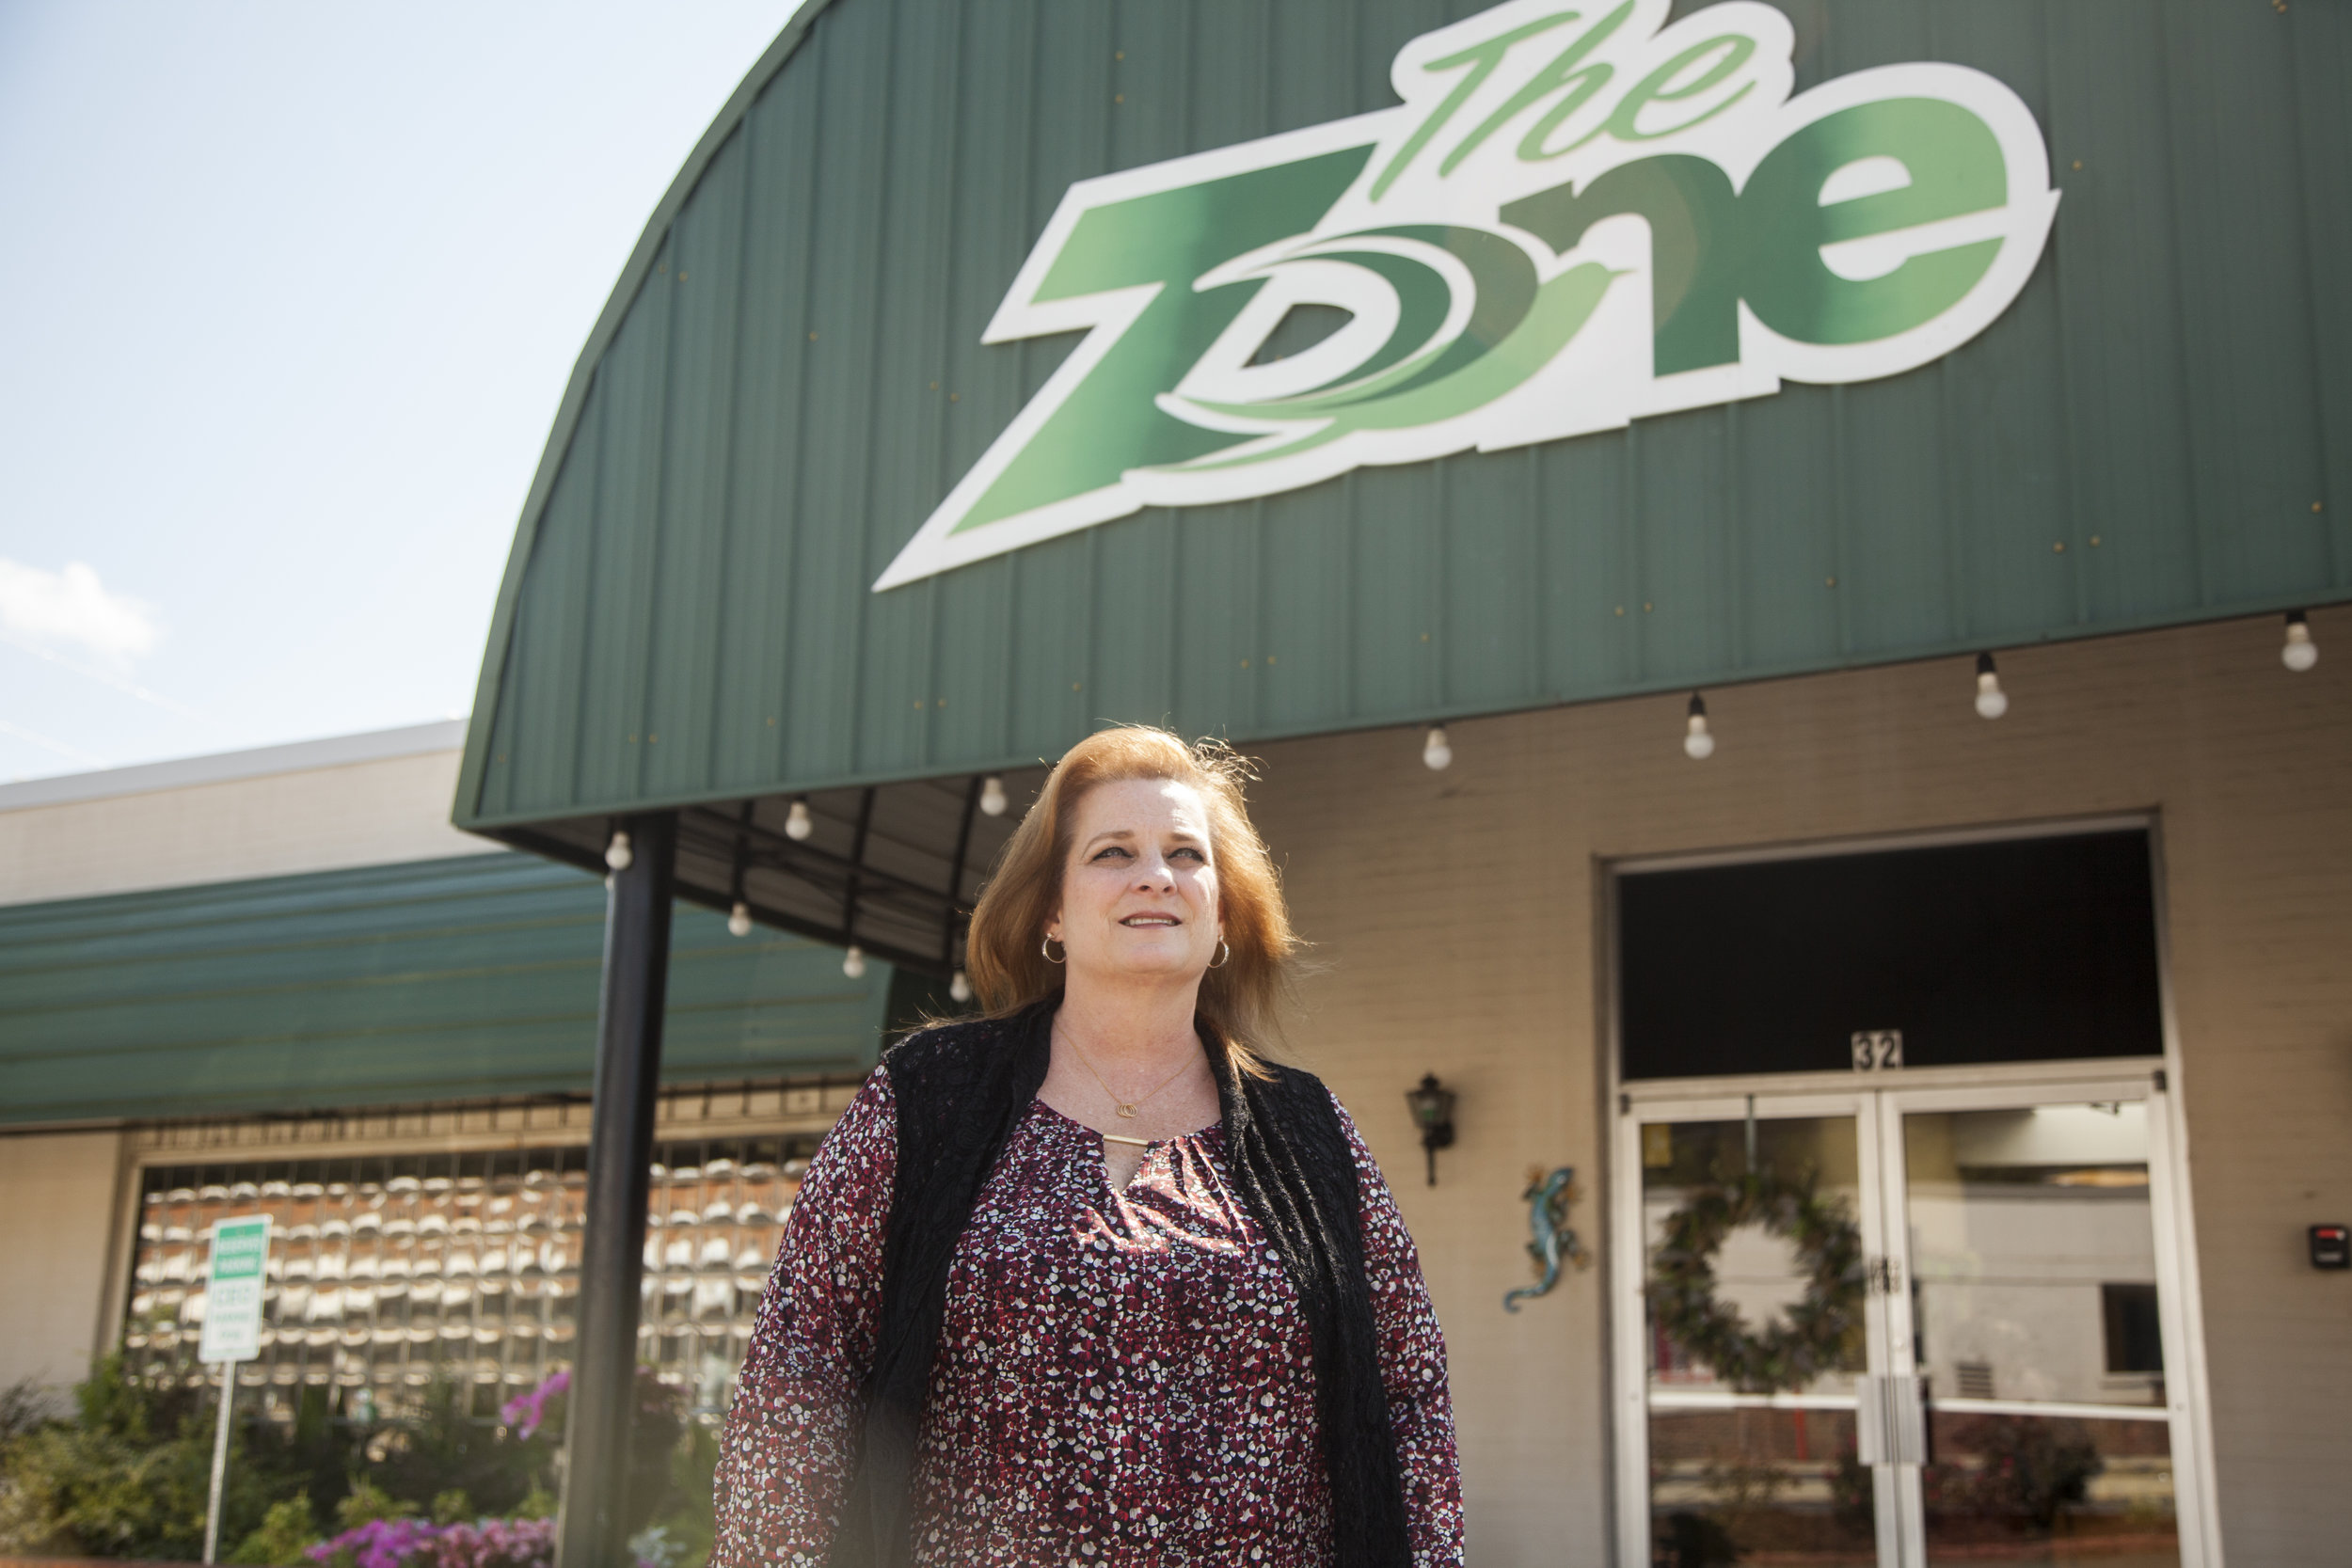 Missy Owen, executive director of the Davis Direction Foundation, poses for a portrait outside of The Zone, an operation to help those in recovery, in Marietta, Georgia, on Monday, June 25, 2018. Missy began work with this foundation after losing her own son to opioid addiction.